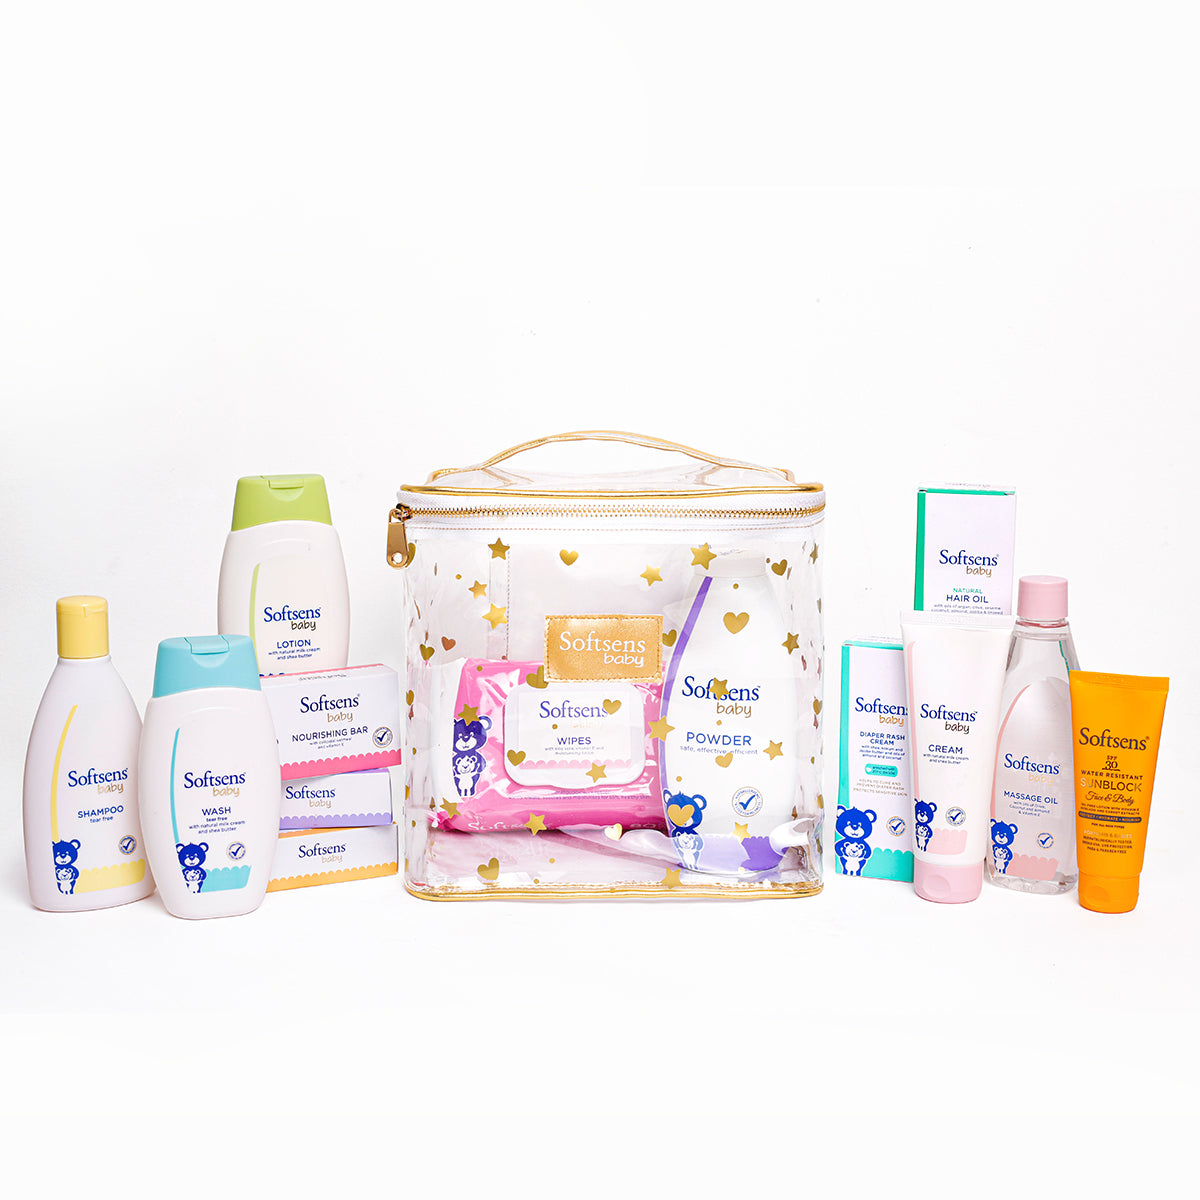 All in One Bundle With Free Travel Kit